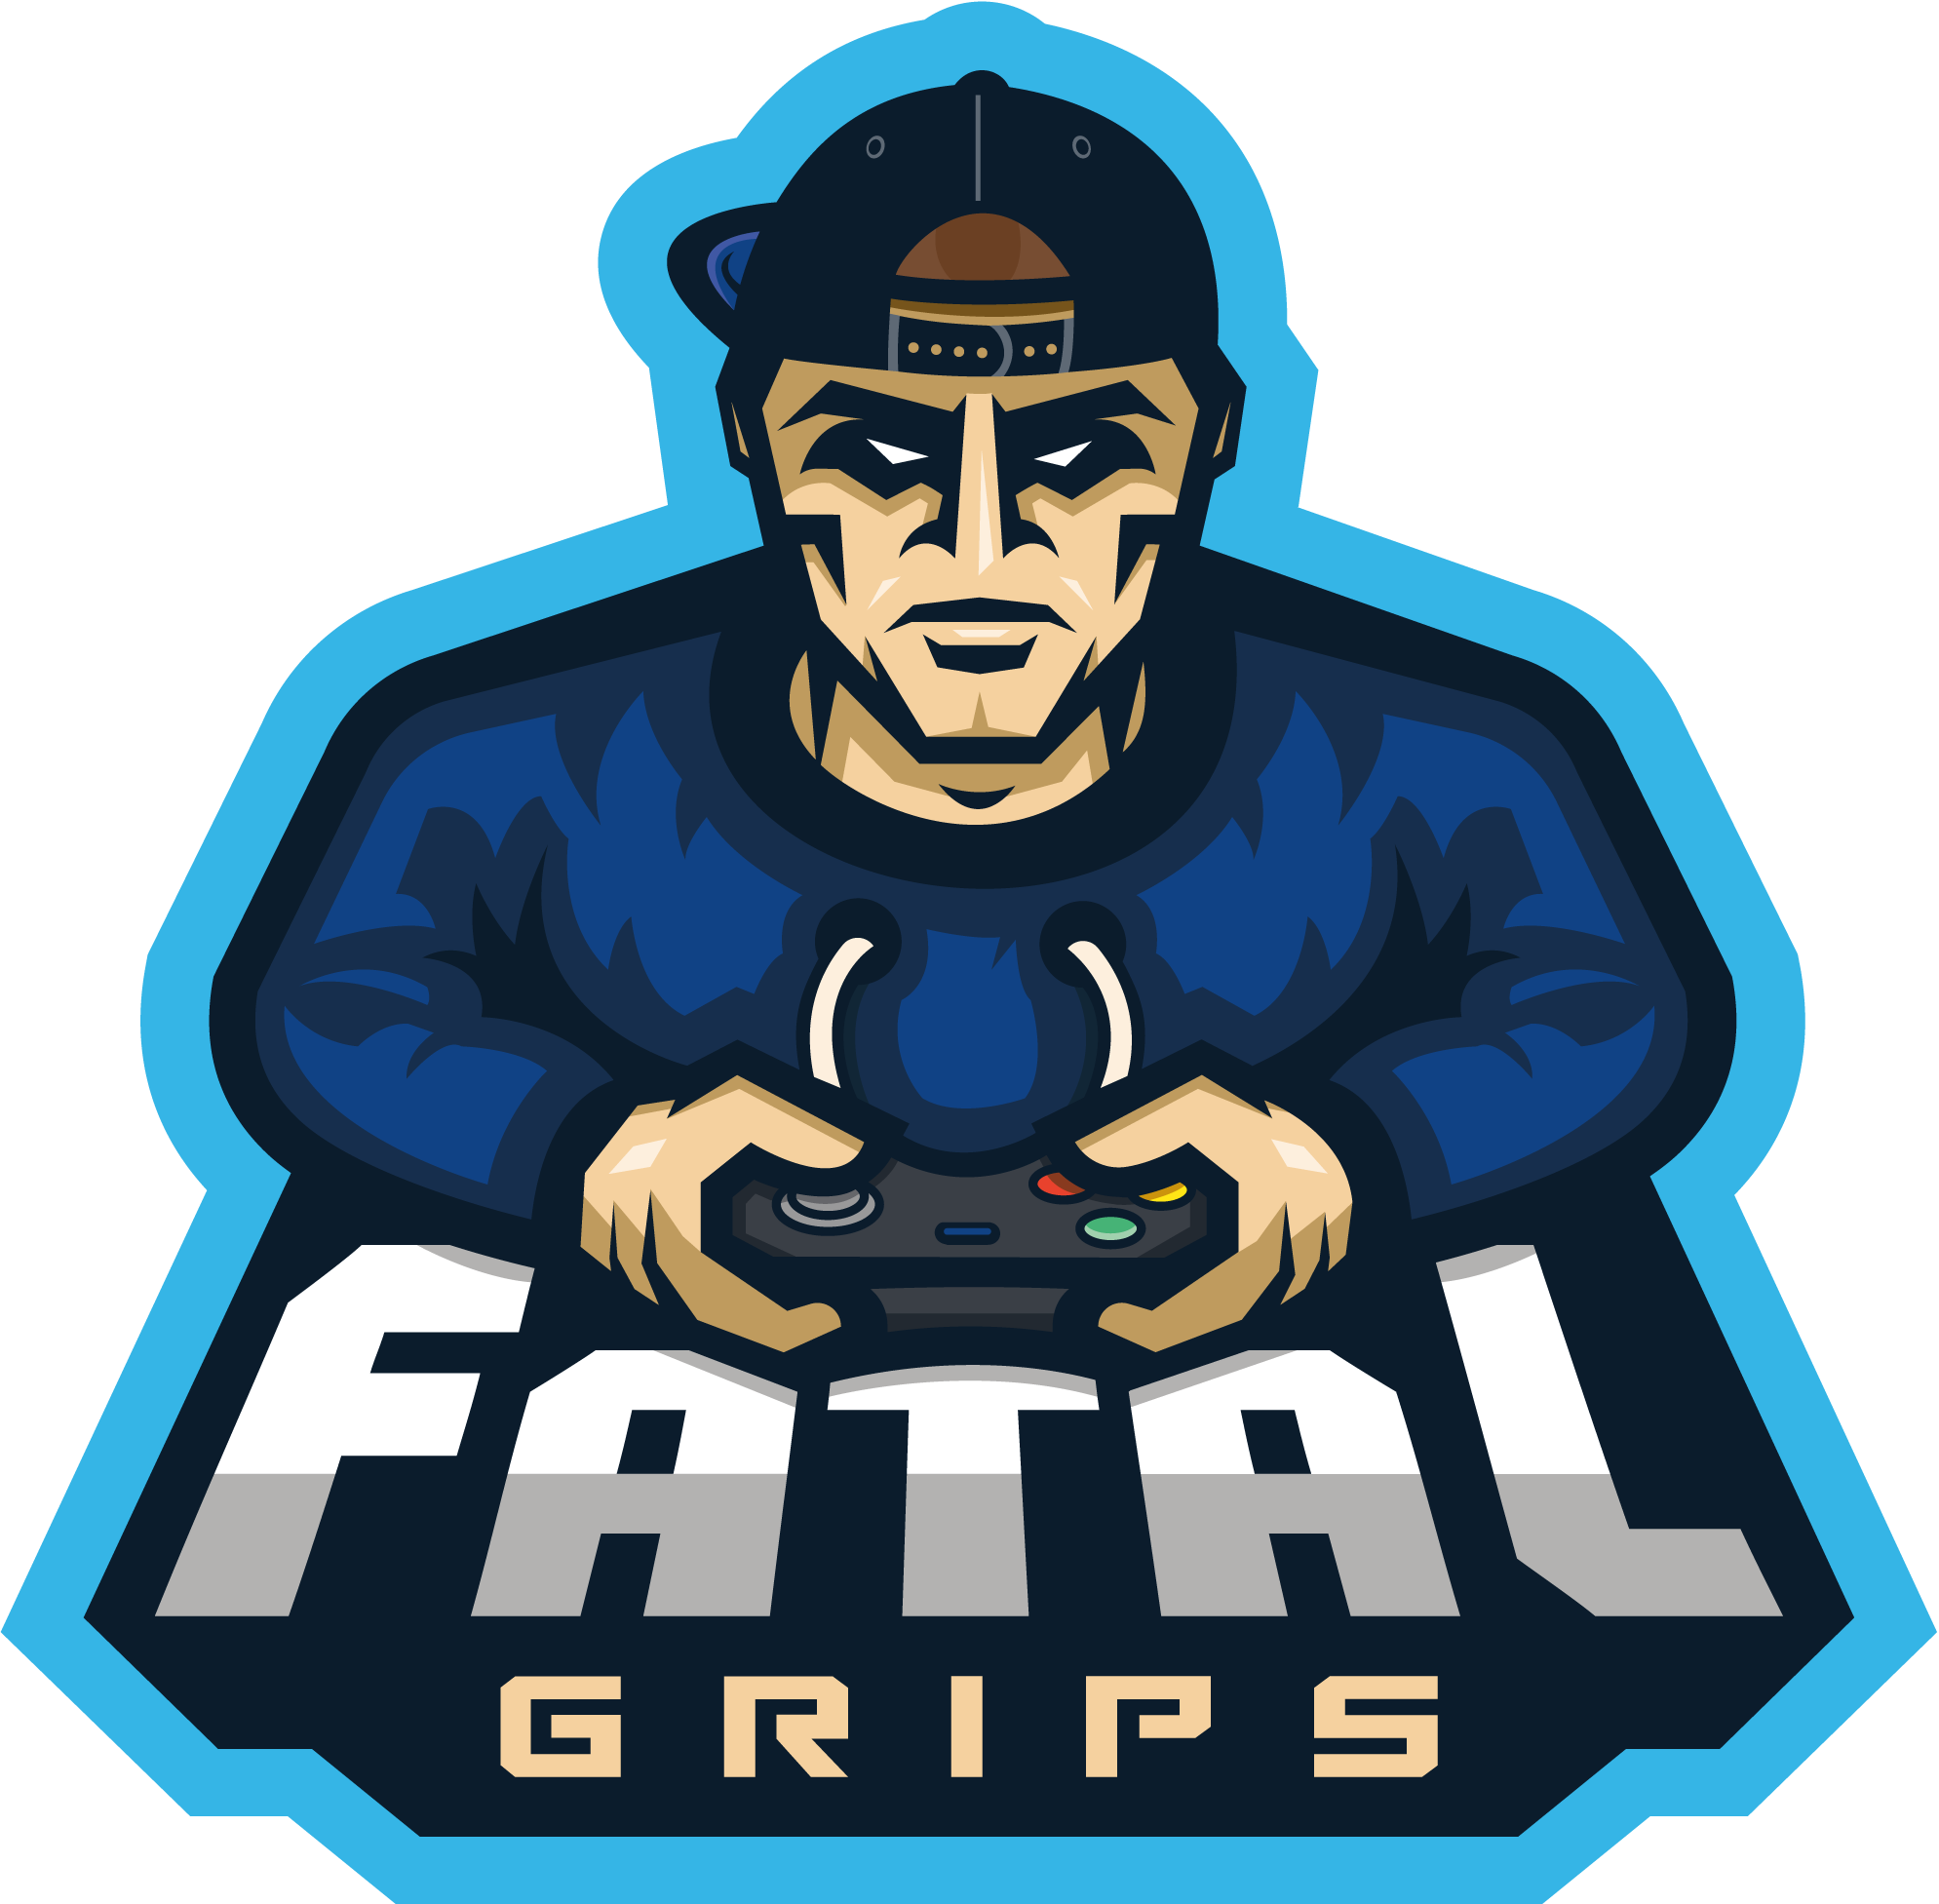 Fatal Grips Fatal Grips Xbox Accessories Gaming Accessories Grips